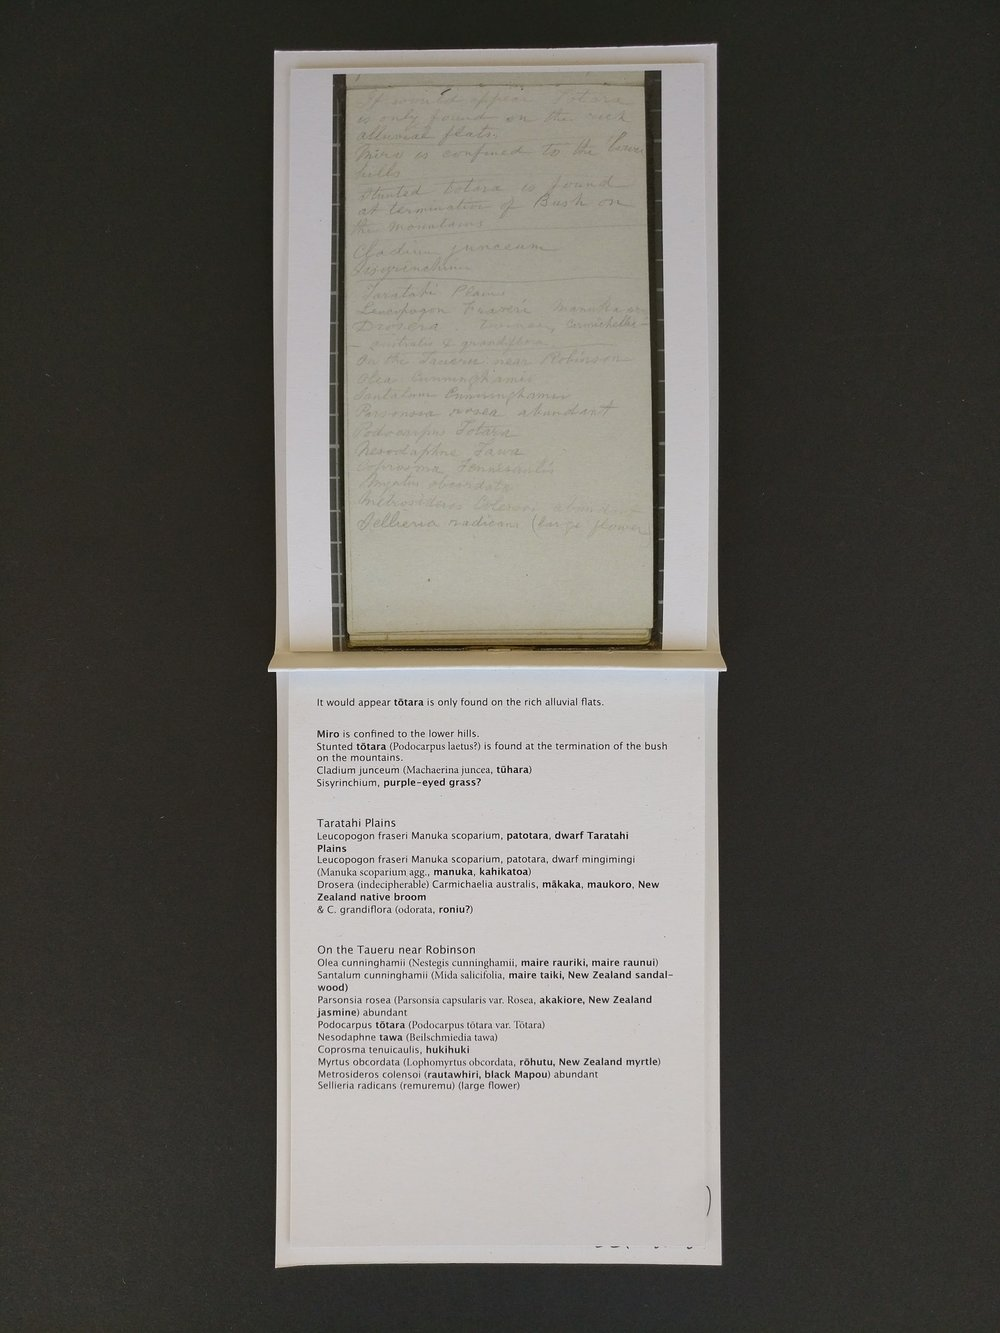 Photo and transcribe of original John Buchanan notes